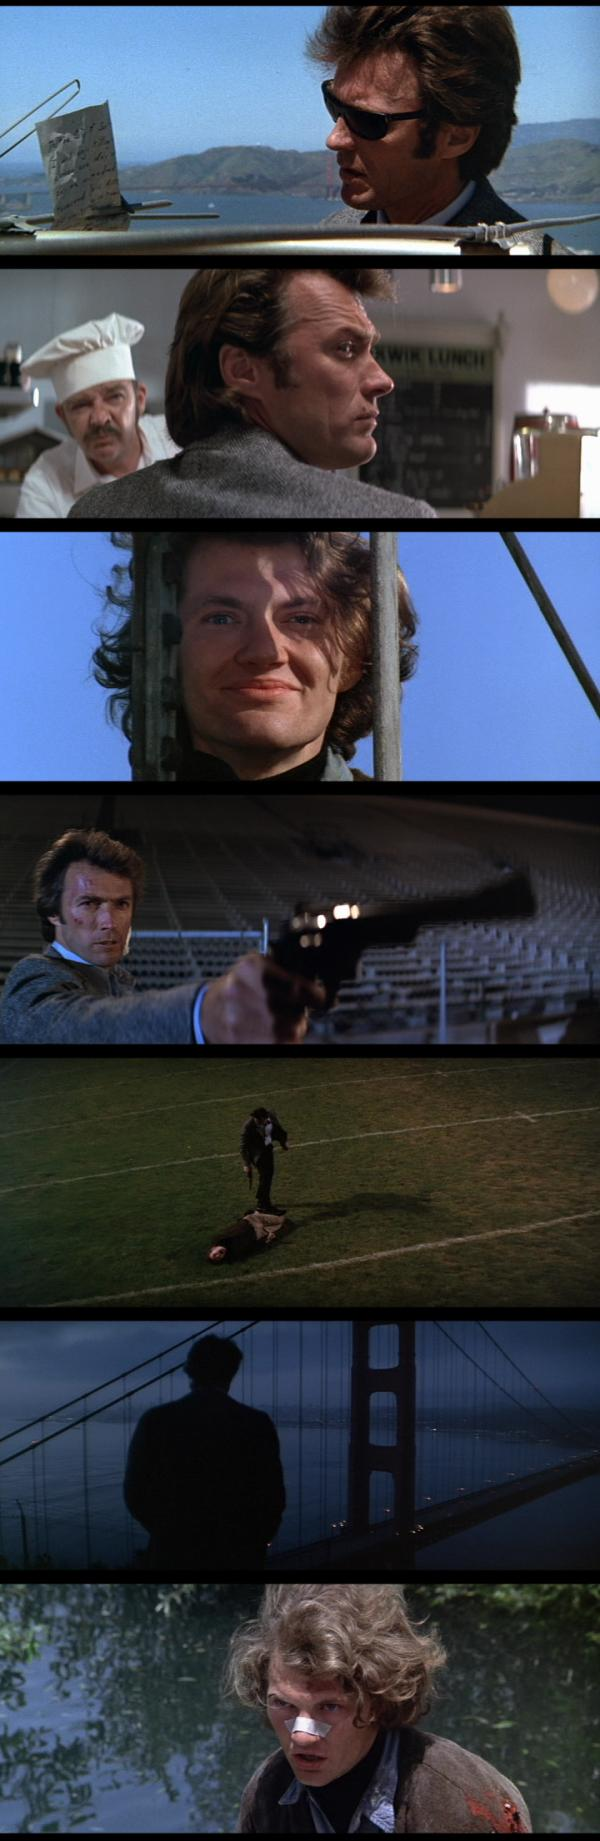 http://watershade.net/public/dirty-harry.jpg